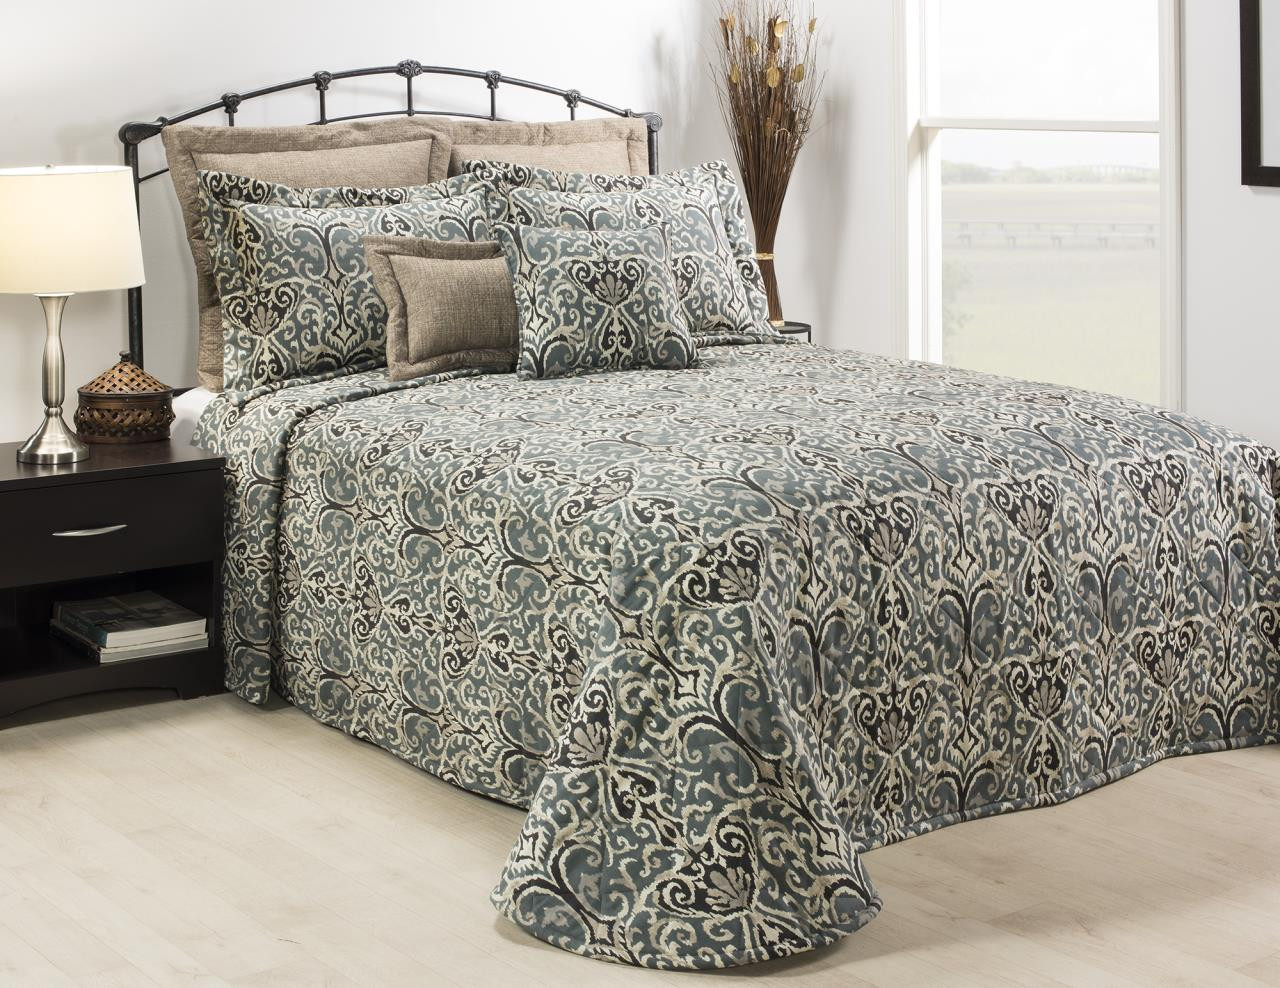 Midnight Ikat Bedding Collection -